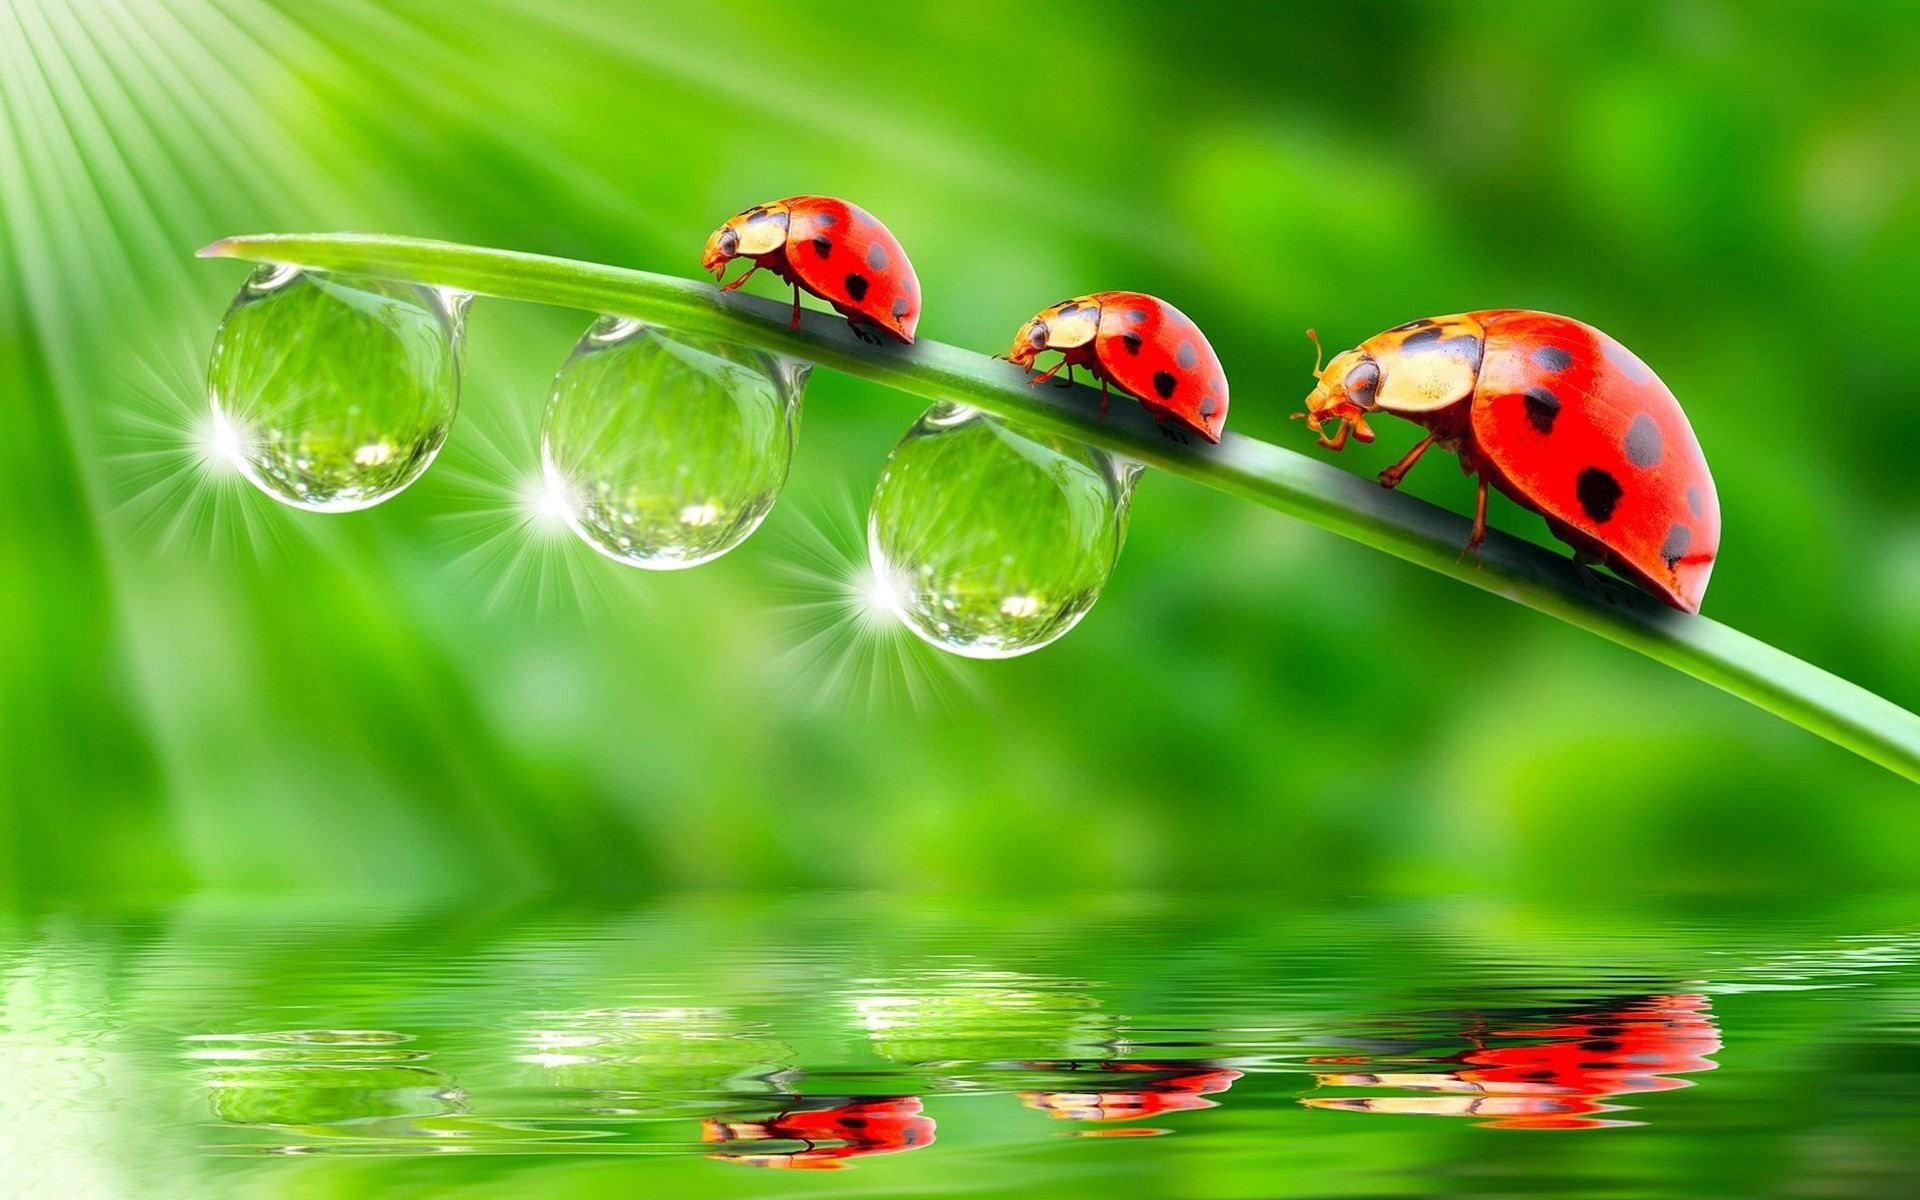 droplets and water ladybug rain blade grass dew flora drop leaf garden nature environmental beetle lawn insect summer purity environment biology hayfield growth